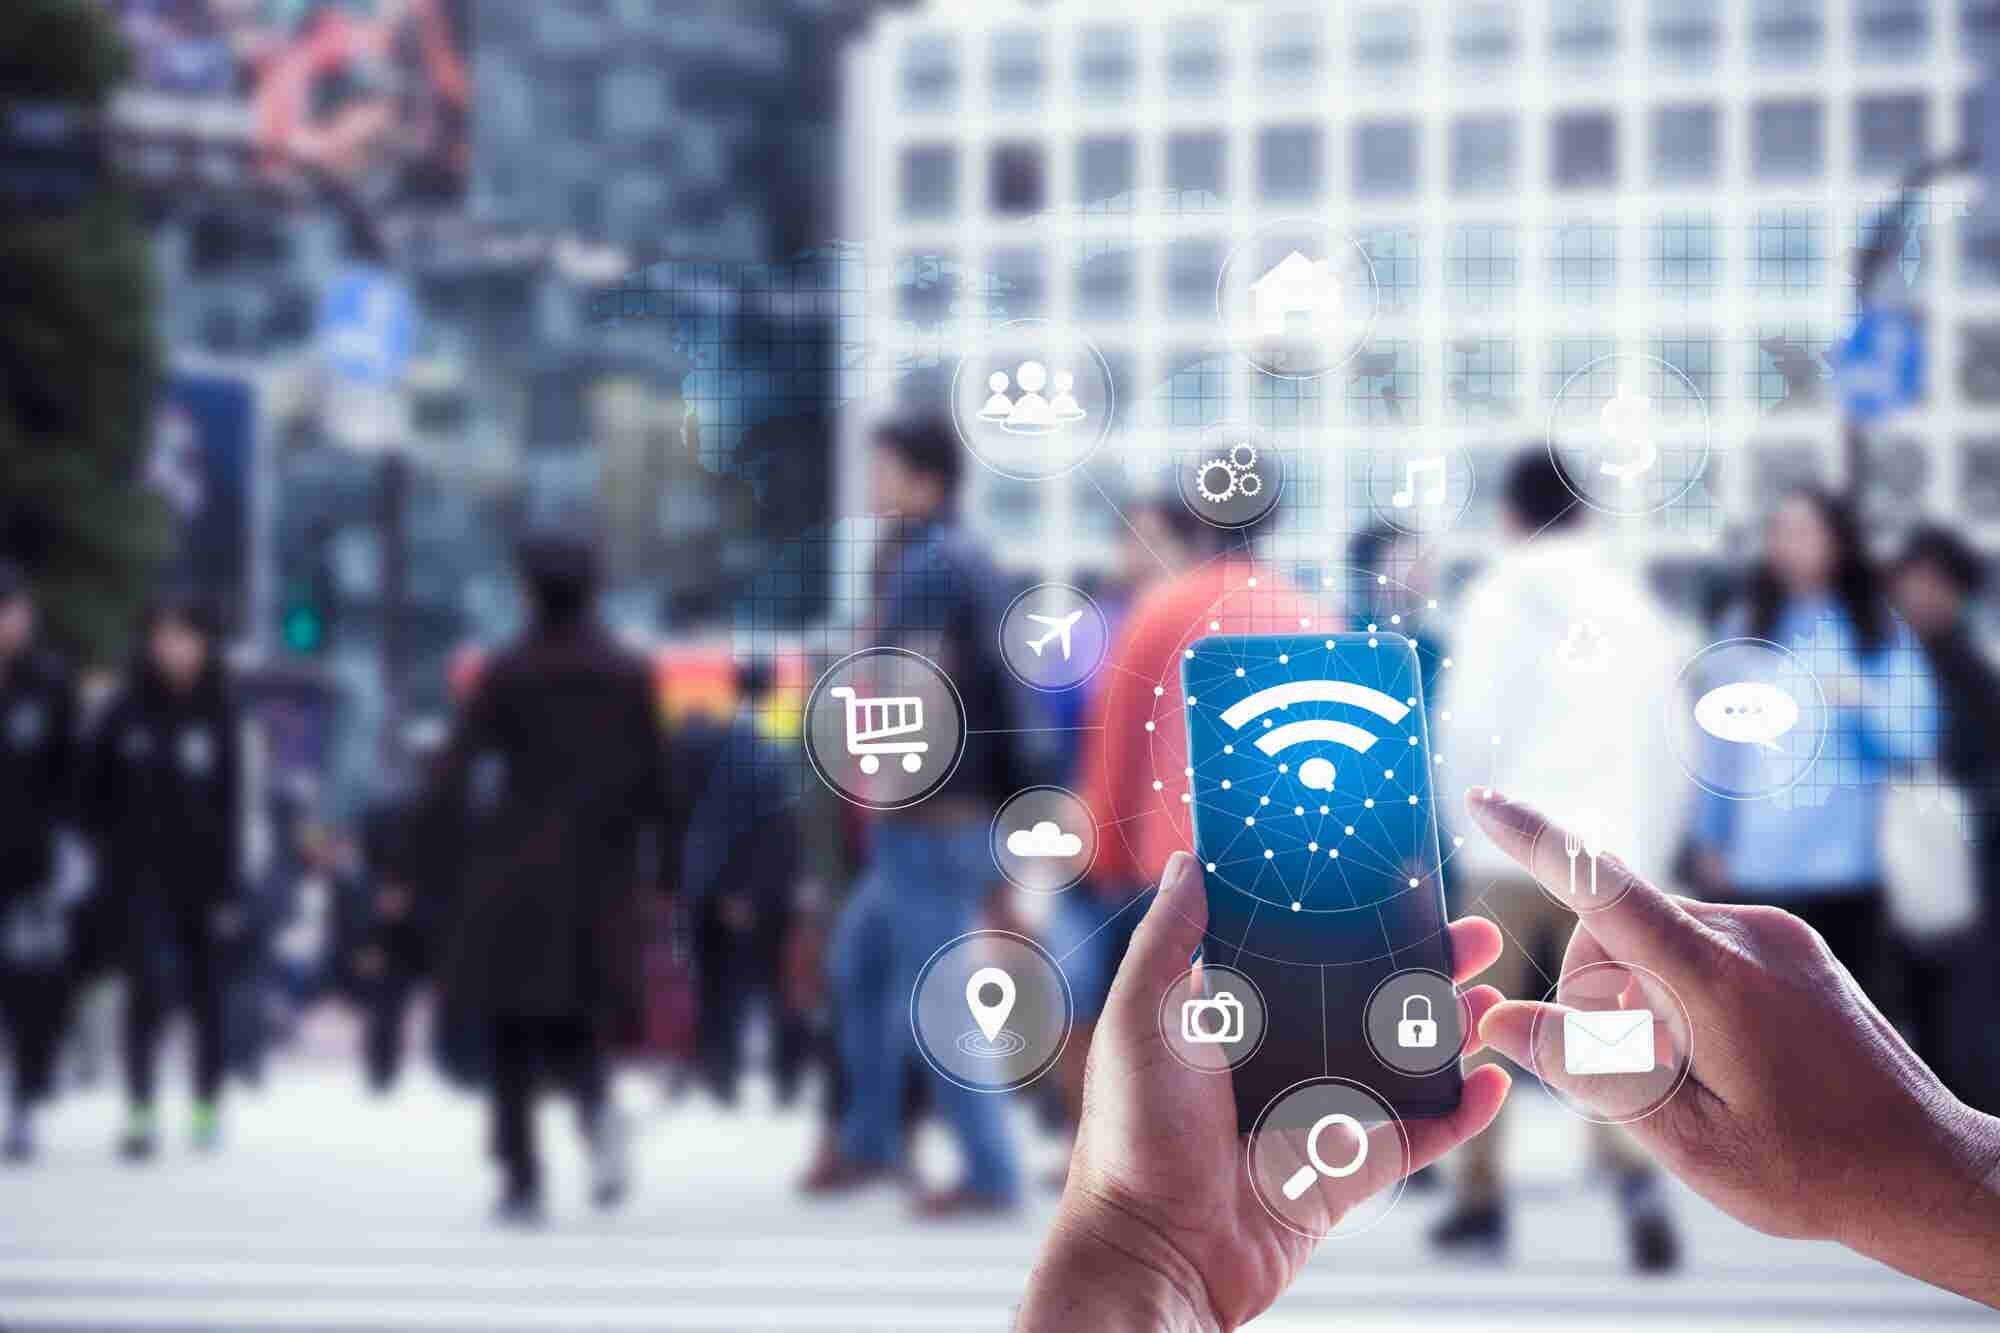 IoT Disruption Has Begun. And Retail Is Just the Start. When Will Your...